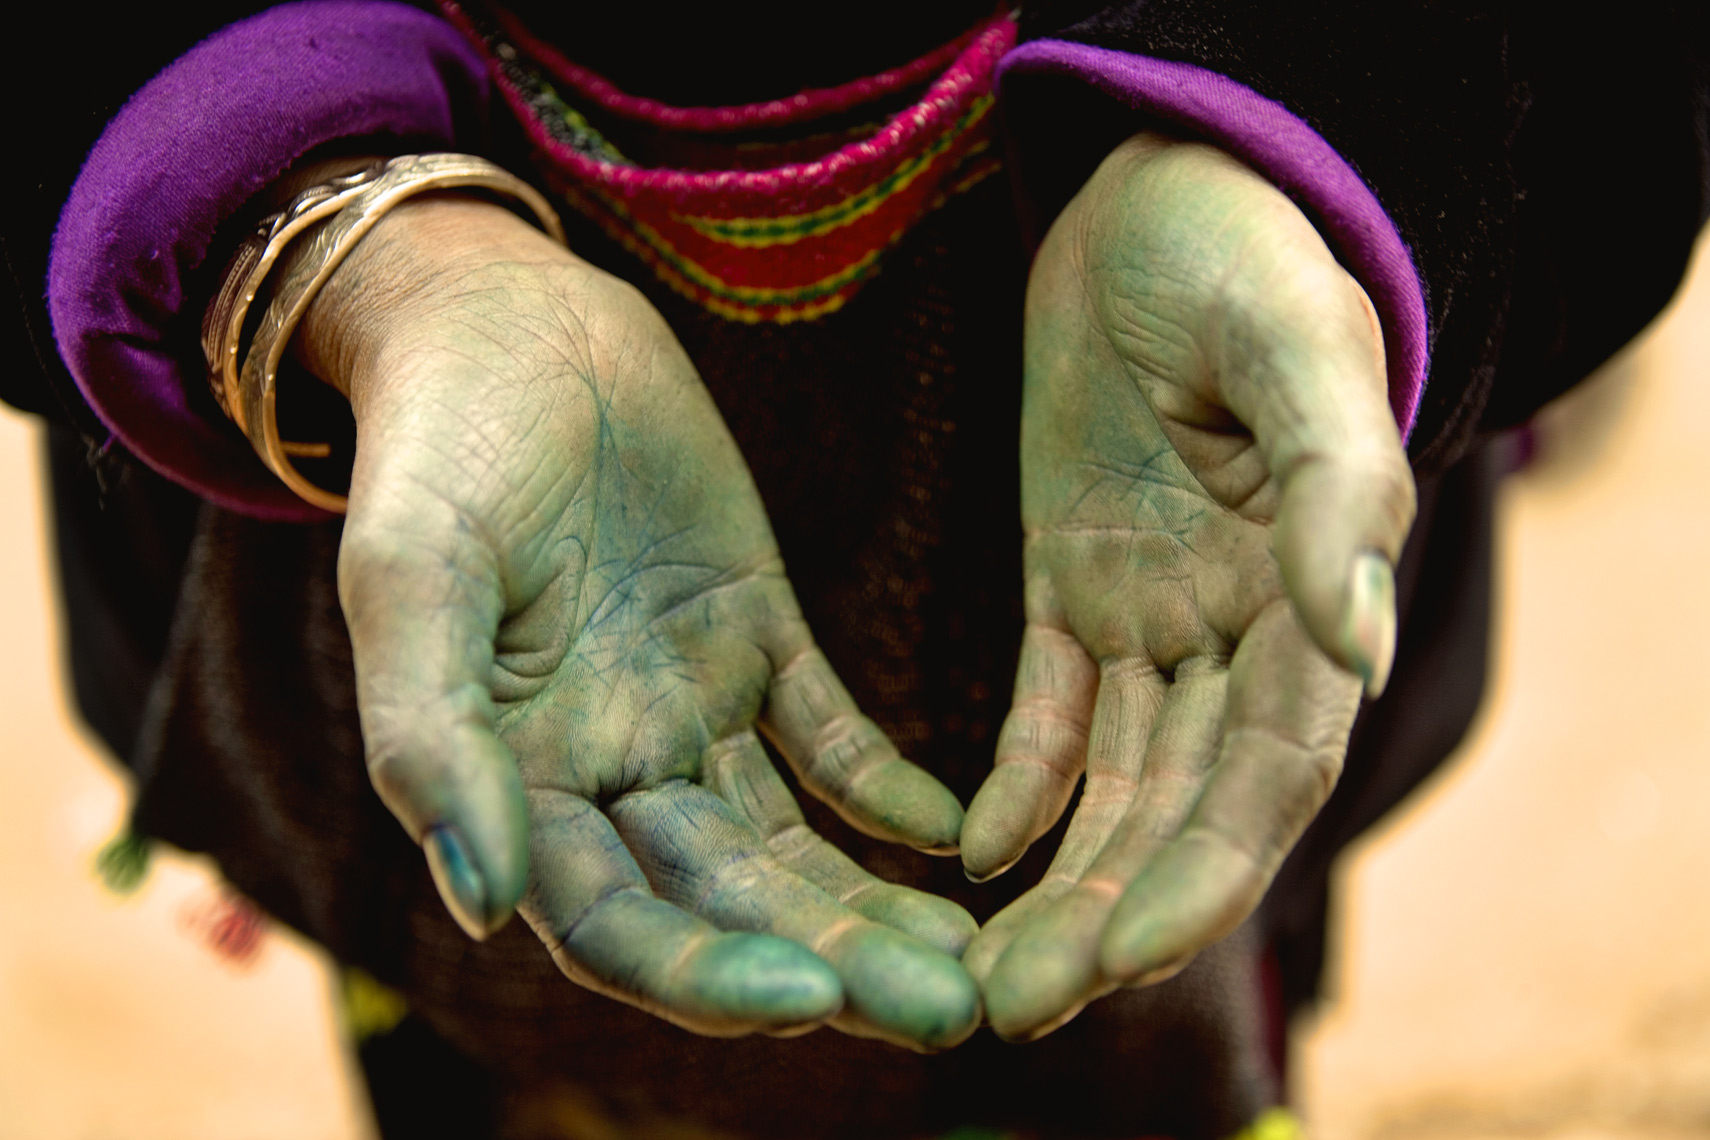 Dye stained hands Sapa, Viet Nam/Steve Mason Photography